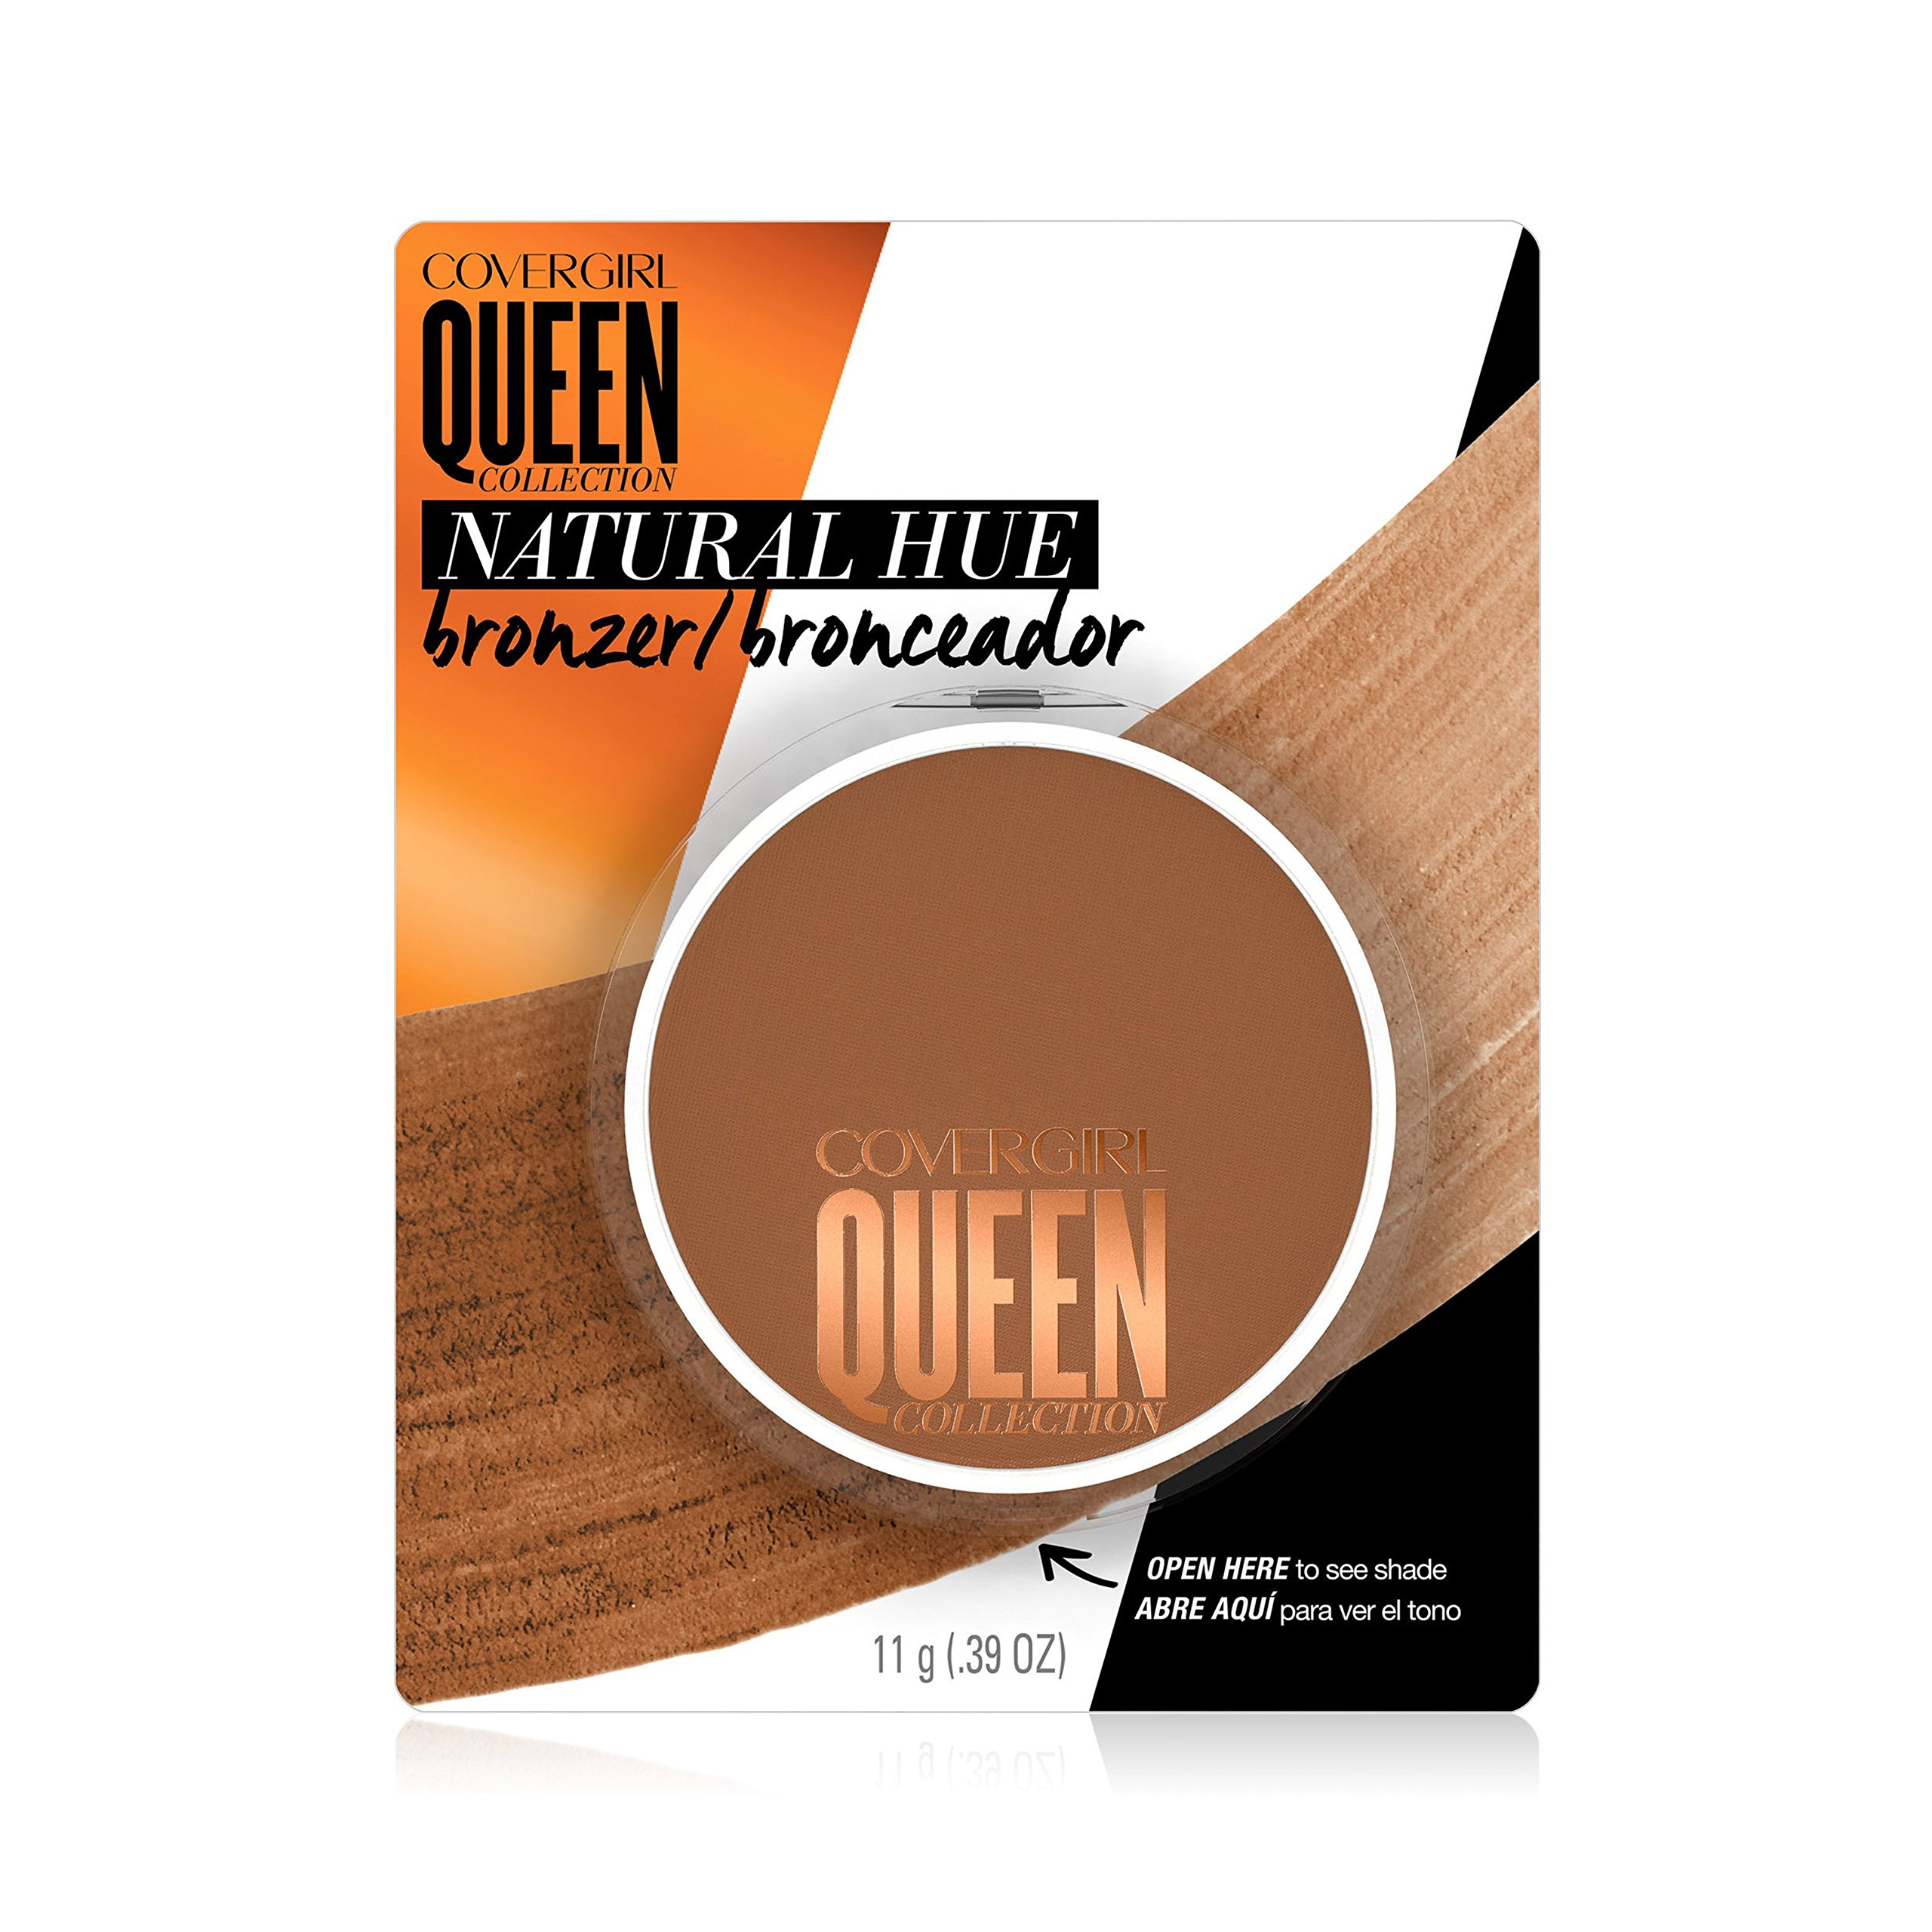 COVERGIRL Queen Collection Natural Hue Mineral Bronzer in Ebony Bronze by COVERGIRL (Image #3)